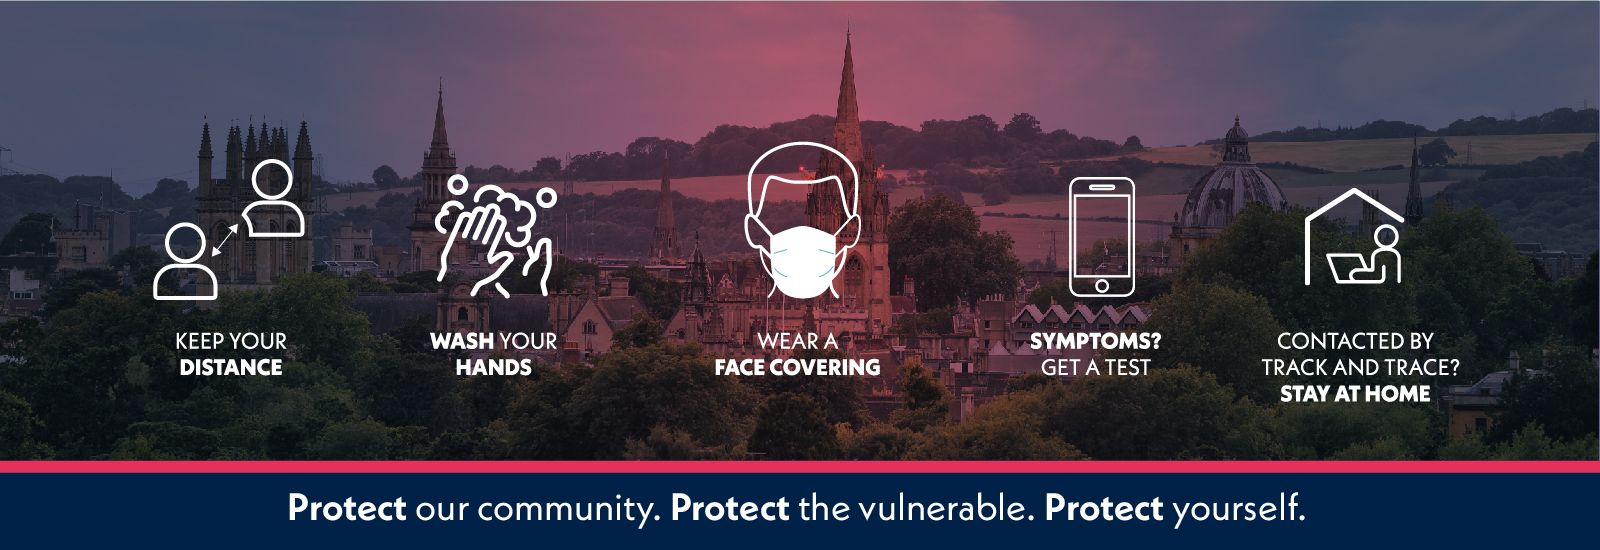 Image showing the five behaviours to make things as safe as possible - Keep your distance, Wash your hands, Wear a face covering, Get a test, Stay at home